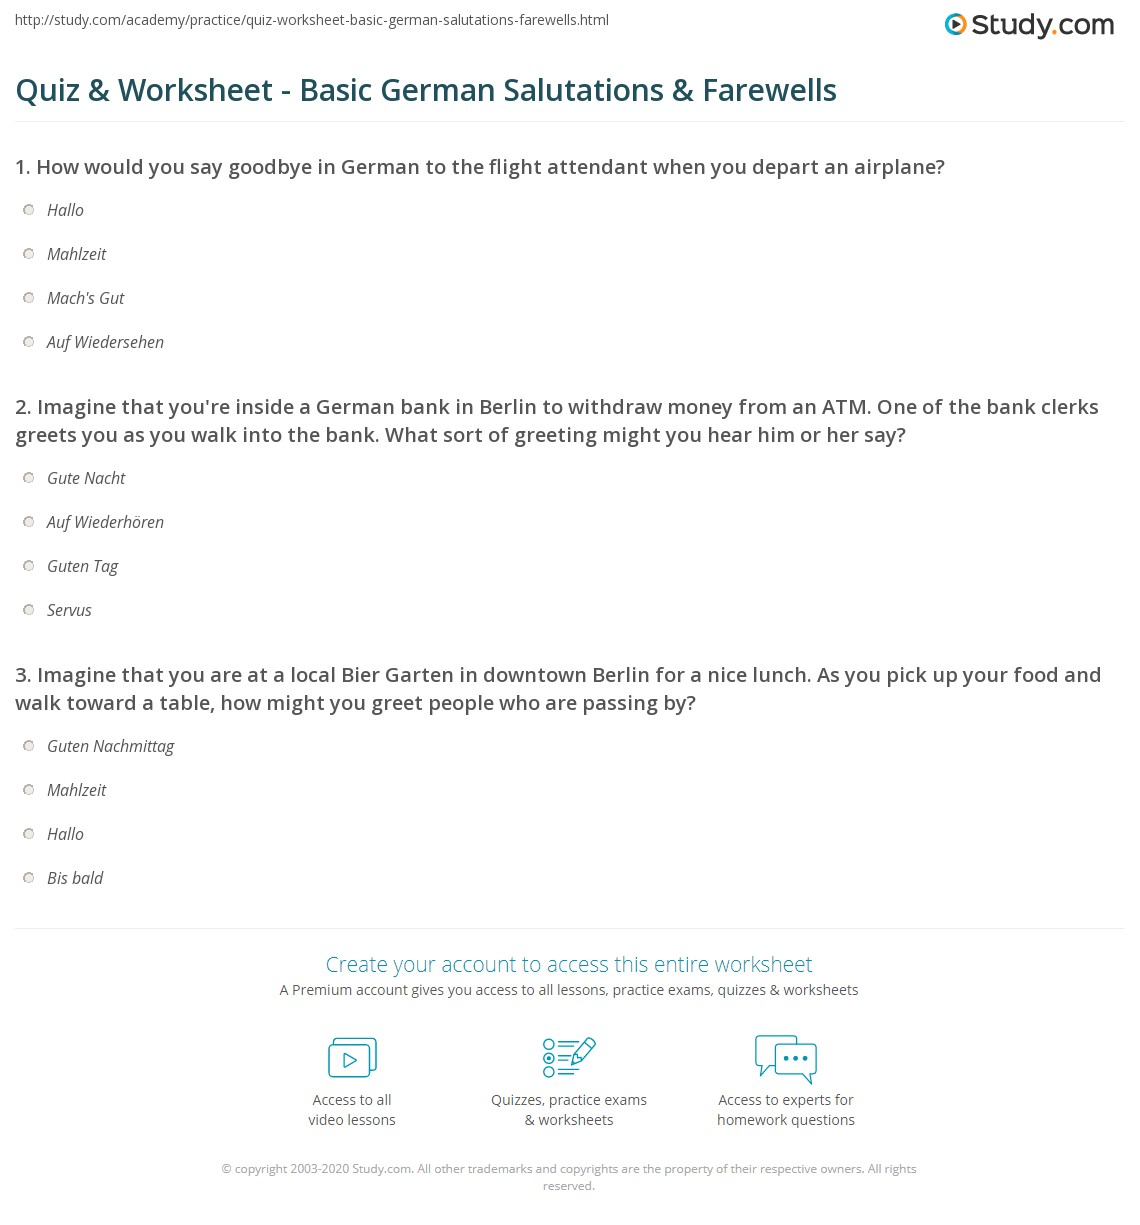 Quiz worksheet basic german salutations farewells study imagine that youre inside a german bank in berlin to withdraw money from an atm one of the bank clerks greets you as you walk into the bank kristyandbryce Gallery